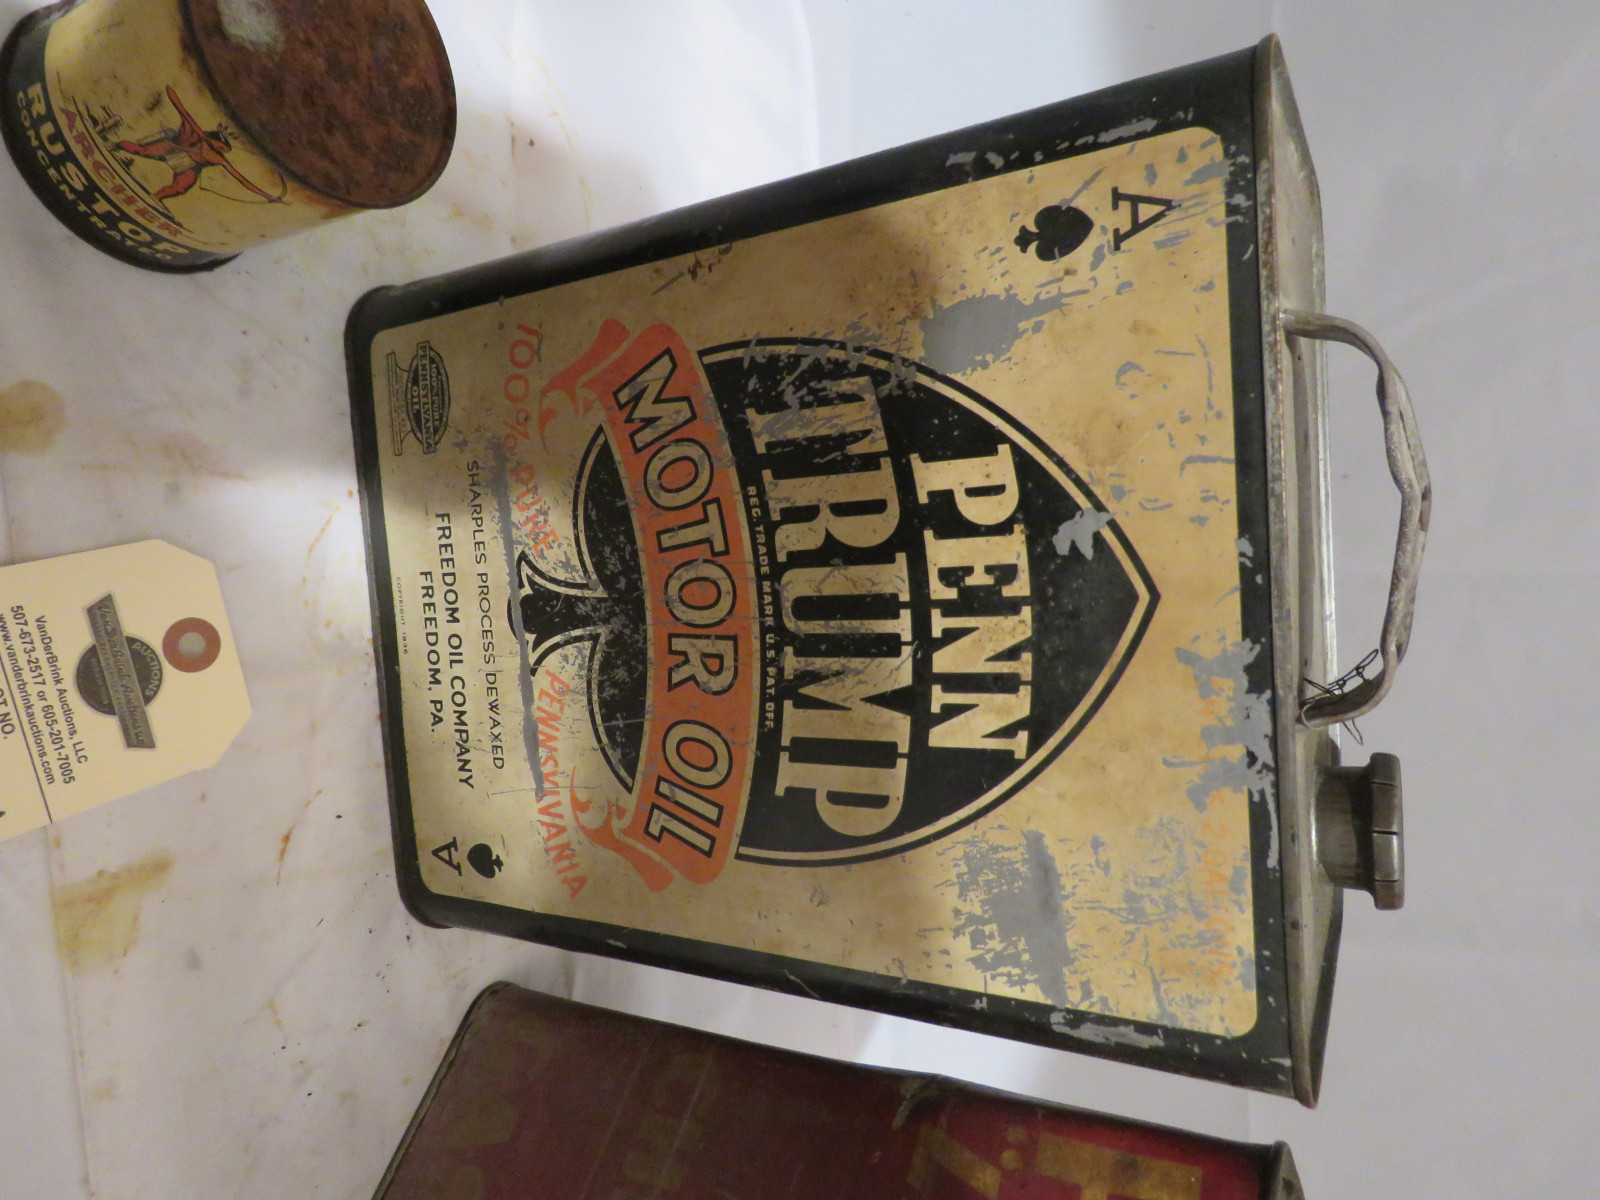 Vintage Oil Can Grouping - Image 2